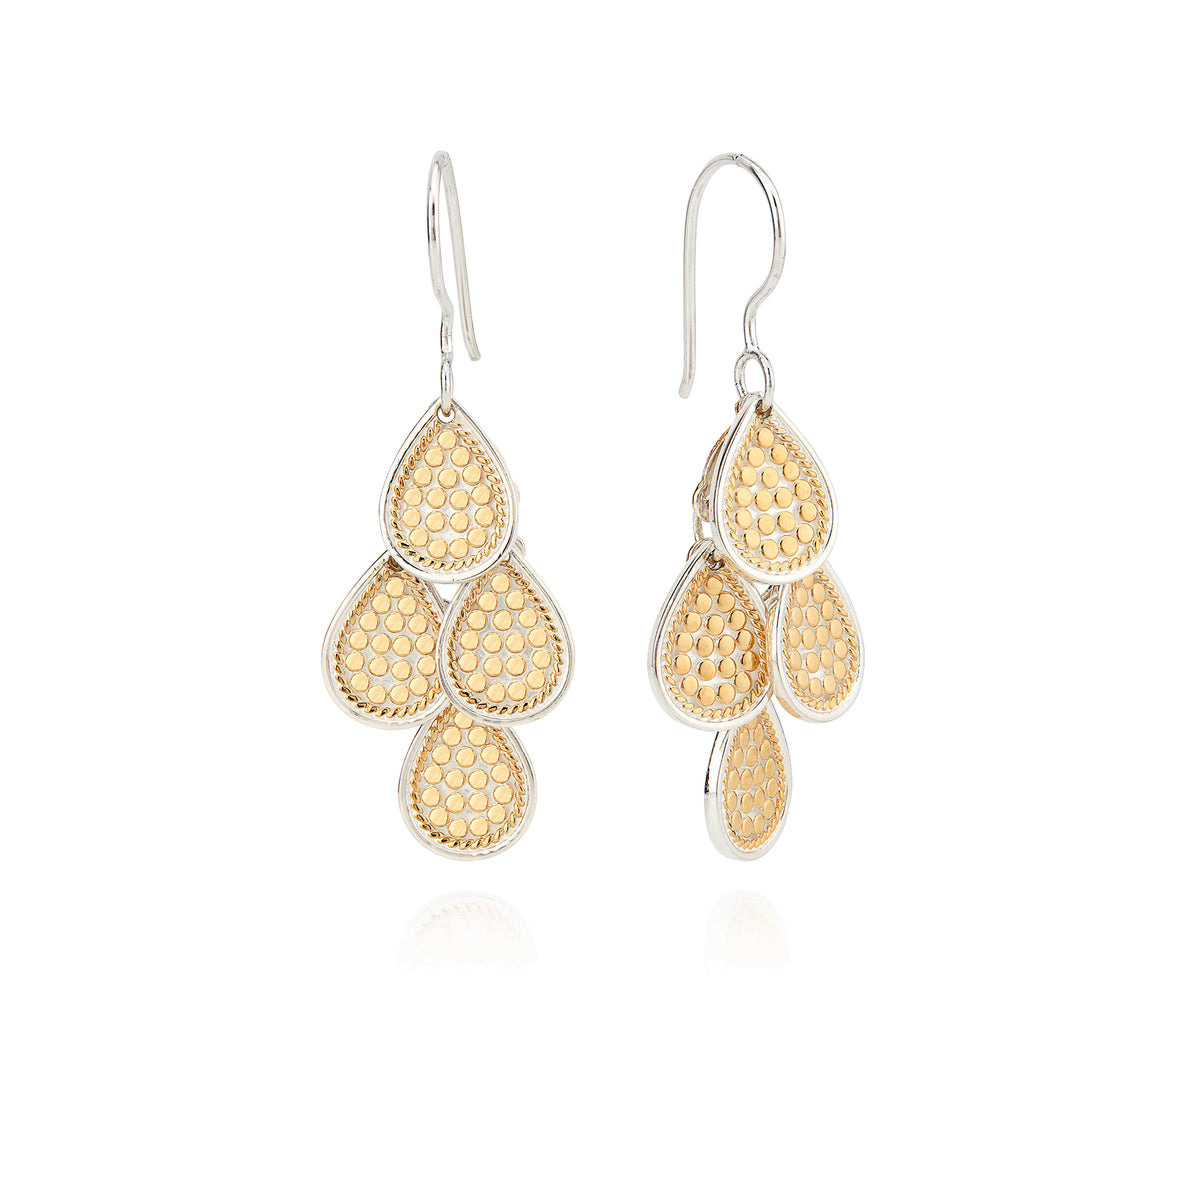 AB 0024E gold tear drops earrings